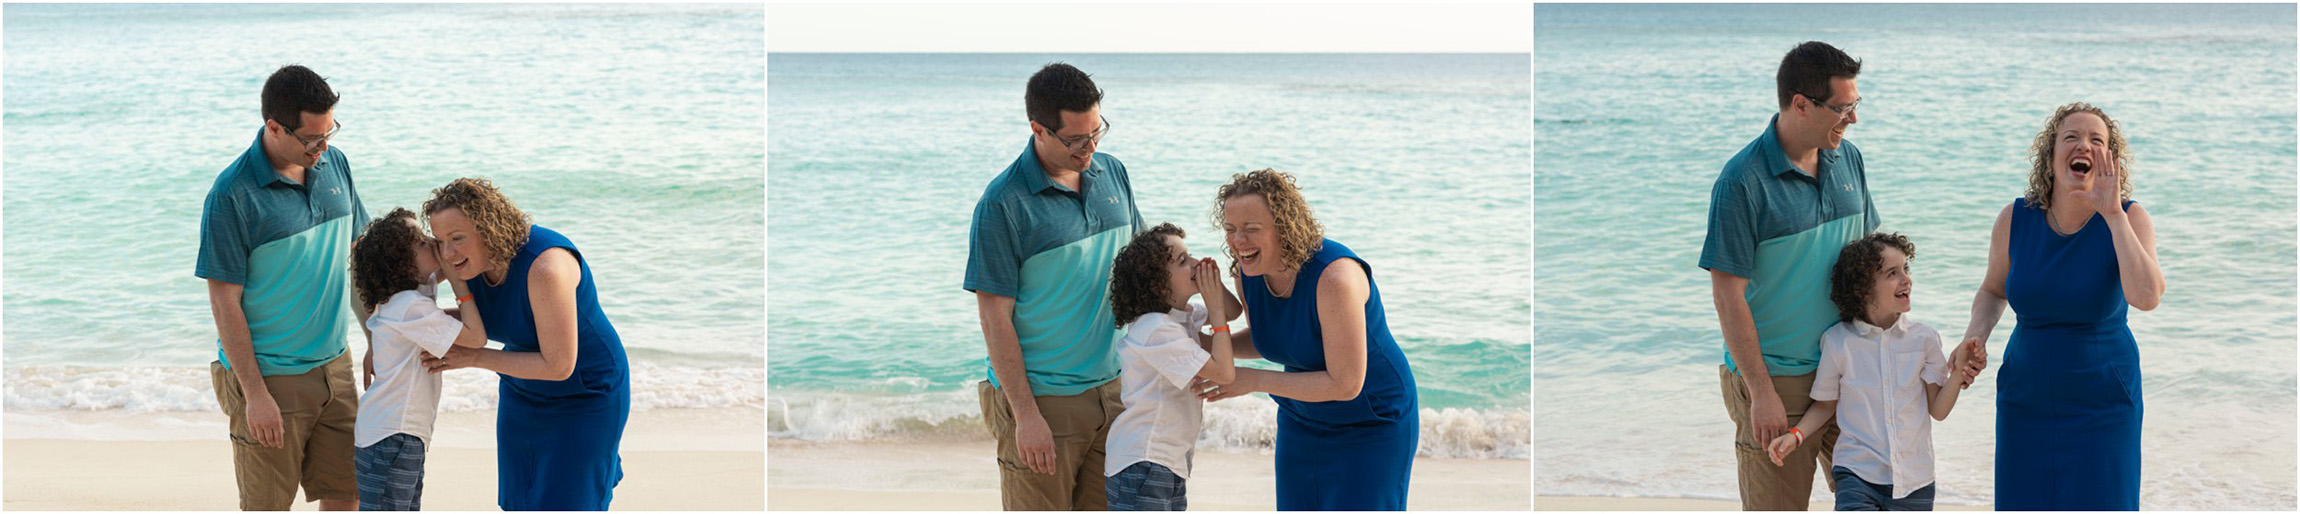 ©FianderFoto_Bermuda Photographer_Church Bay Park_Ashley_Family_004.jpg